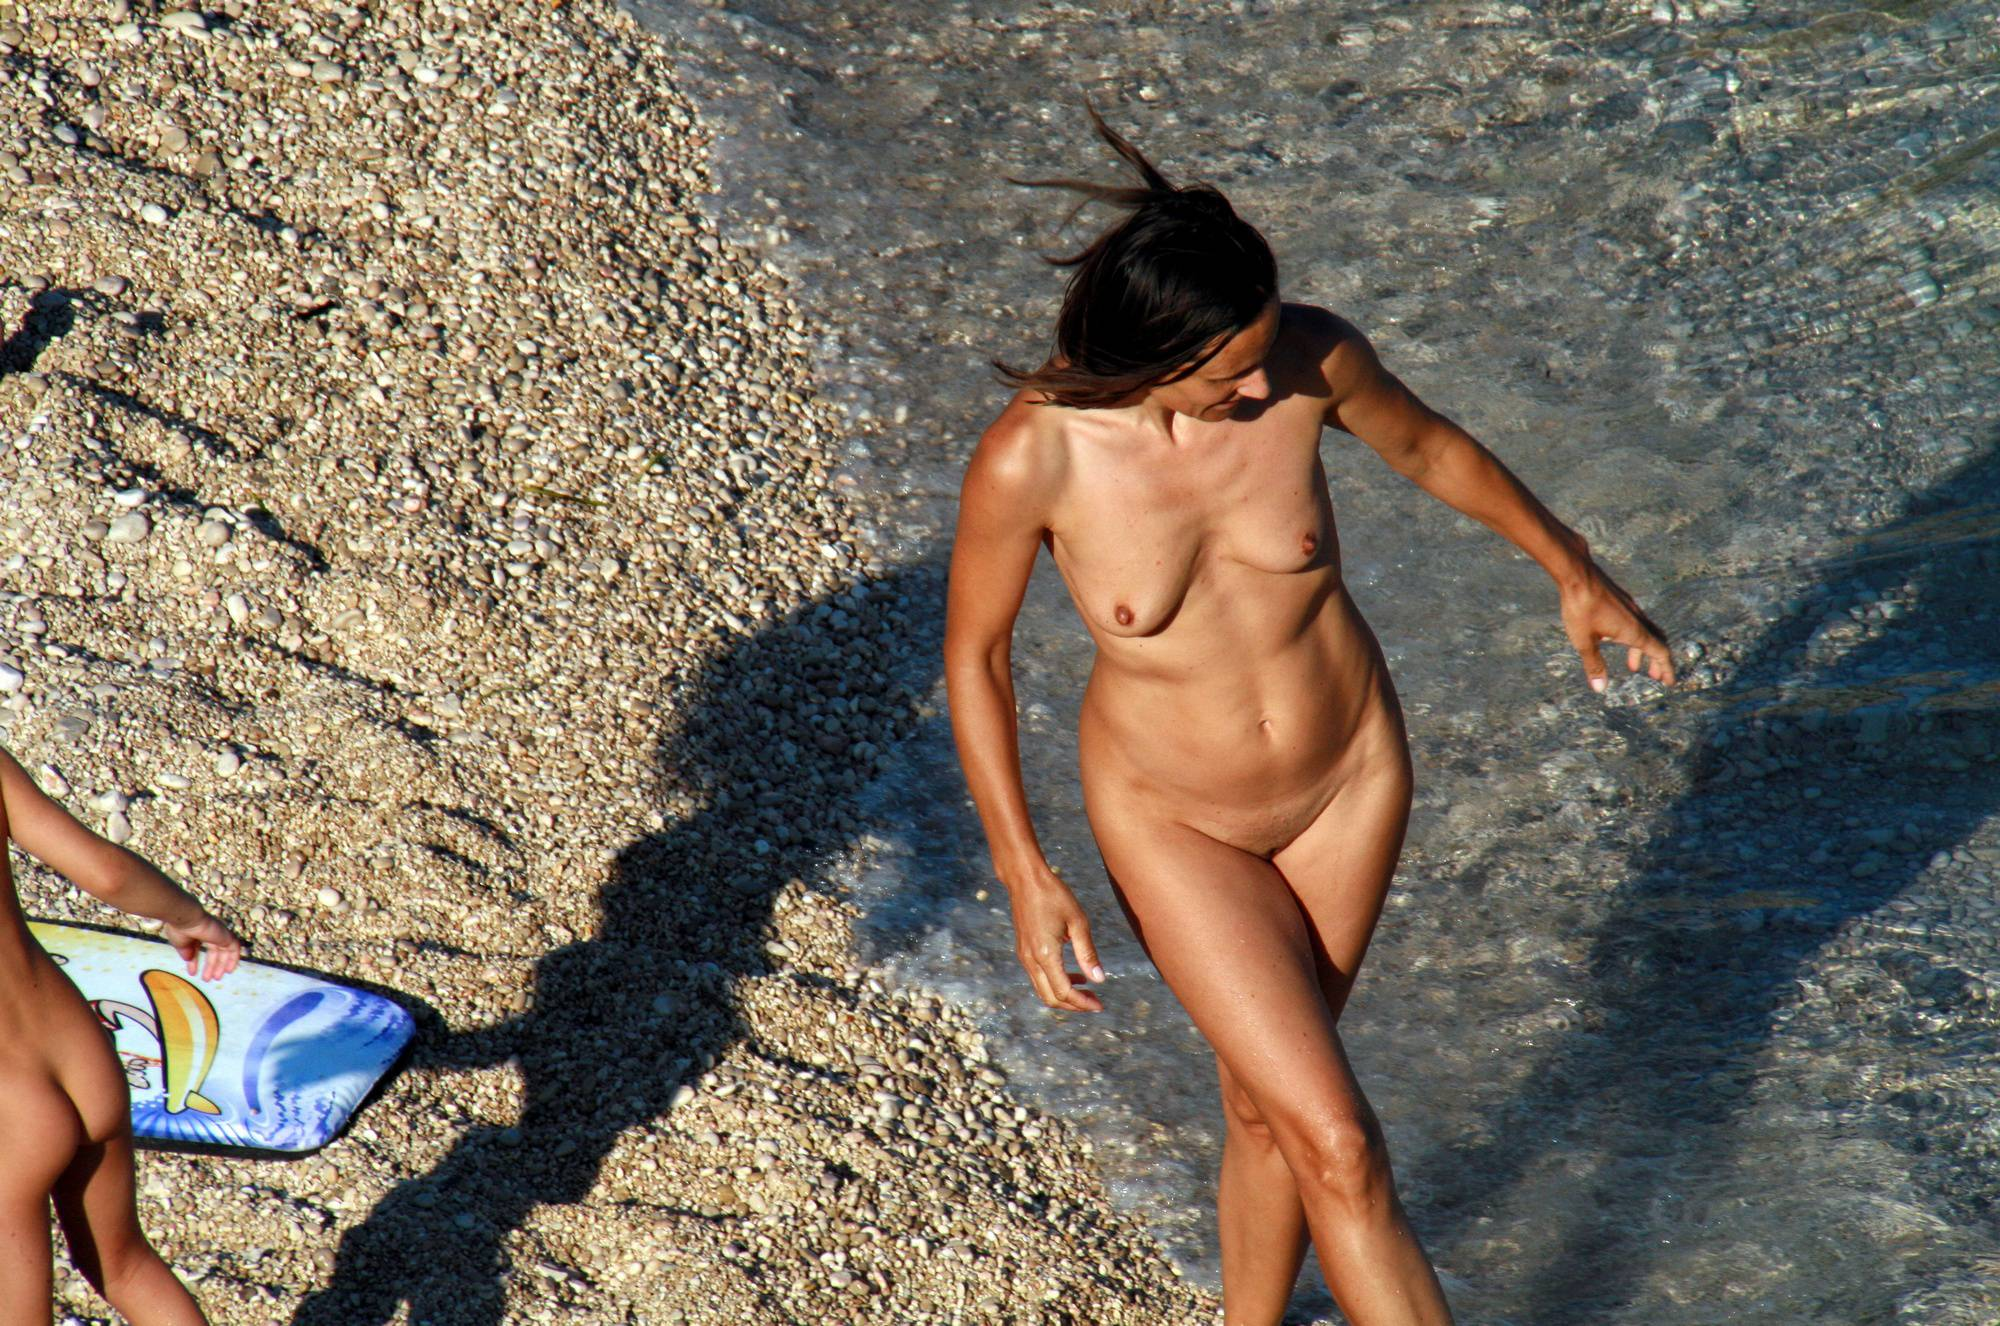 Purenudism Images Family Sunset Nude Shots - 2